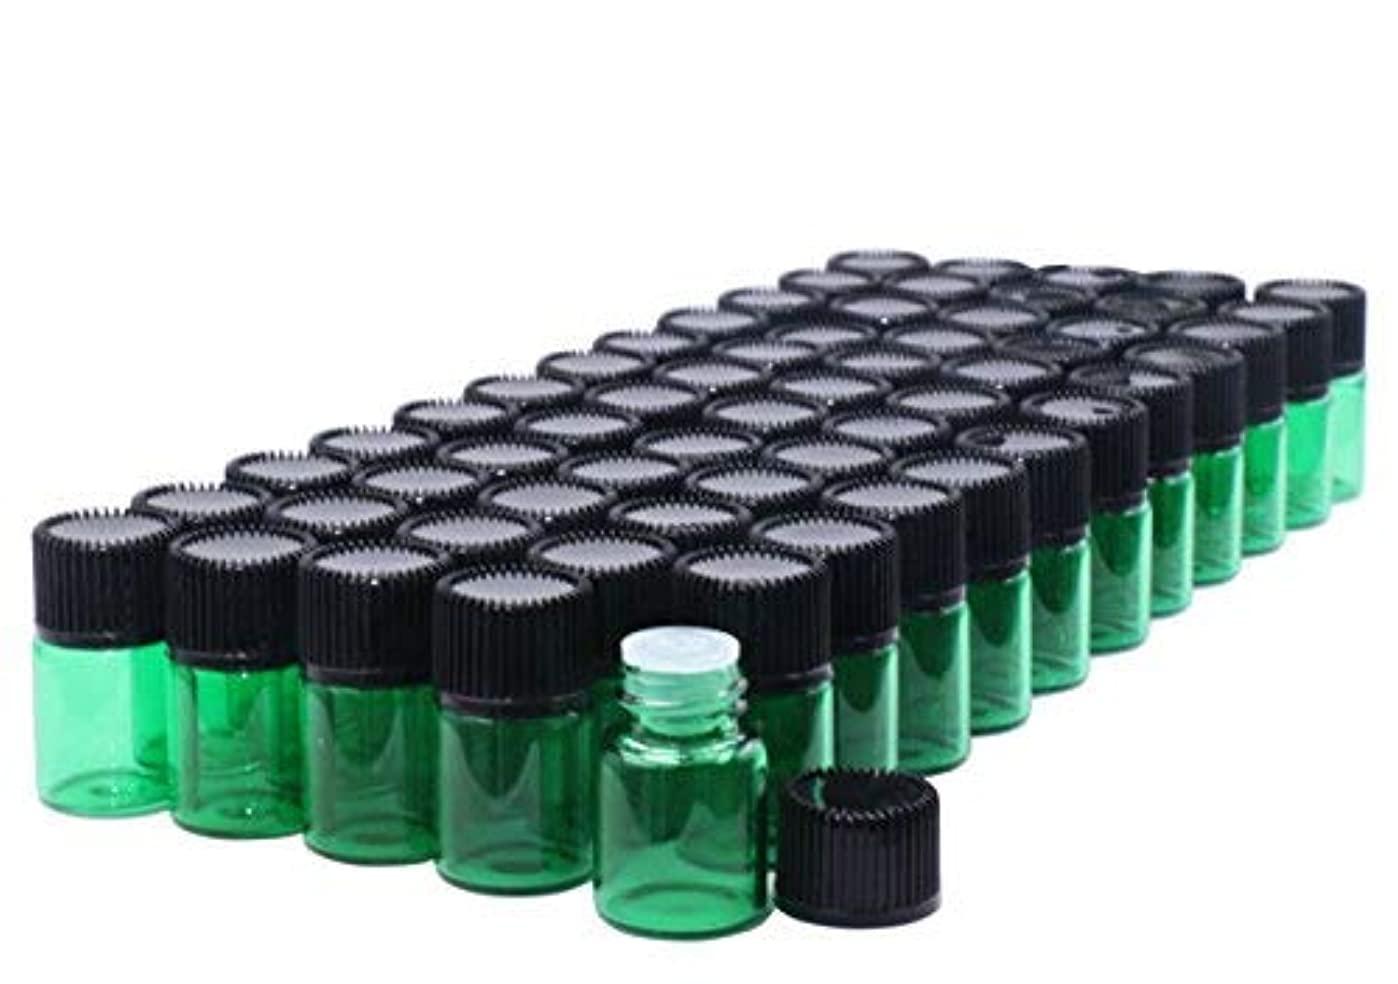 ホールサロンどっちPack of 60,2 ml (5/8 Dram) Green Glass Sample Vials Empty Small glass essential oil sampling Test Bottles with...